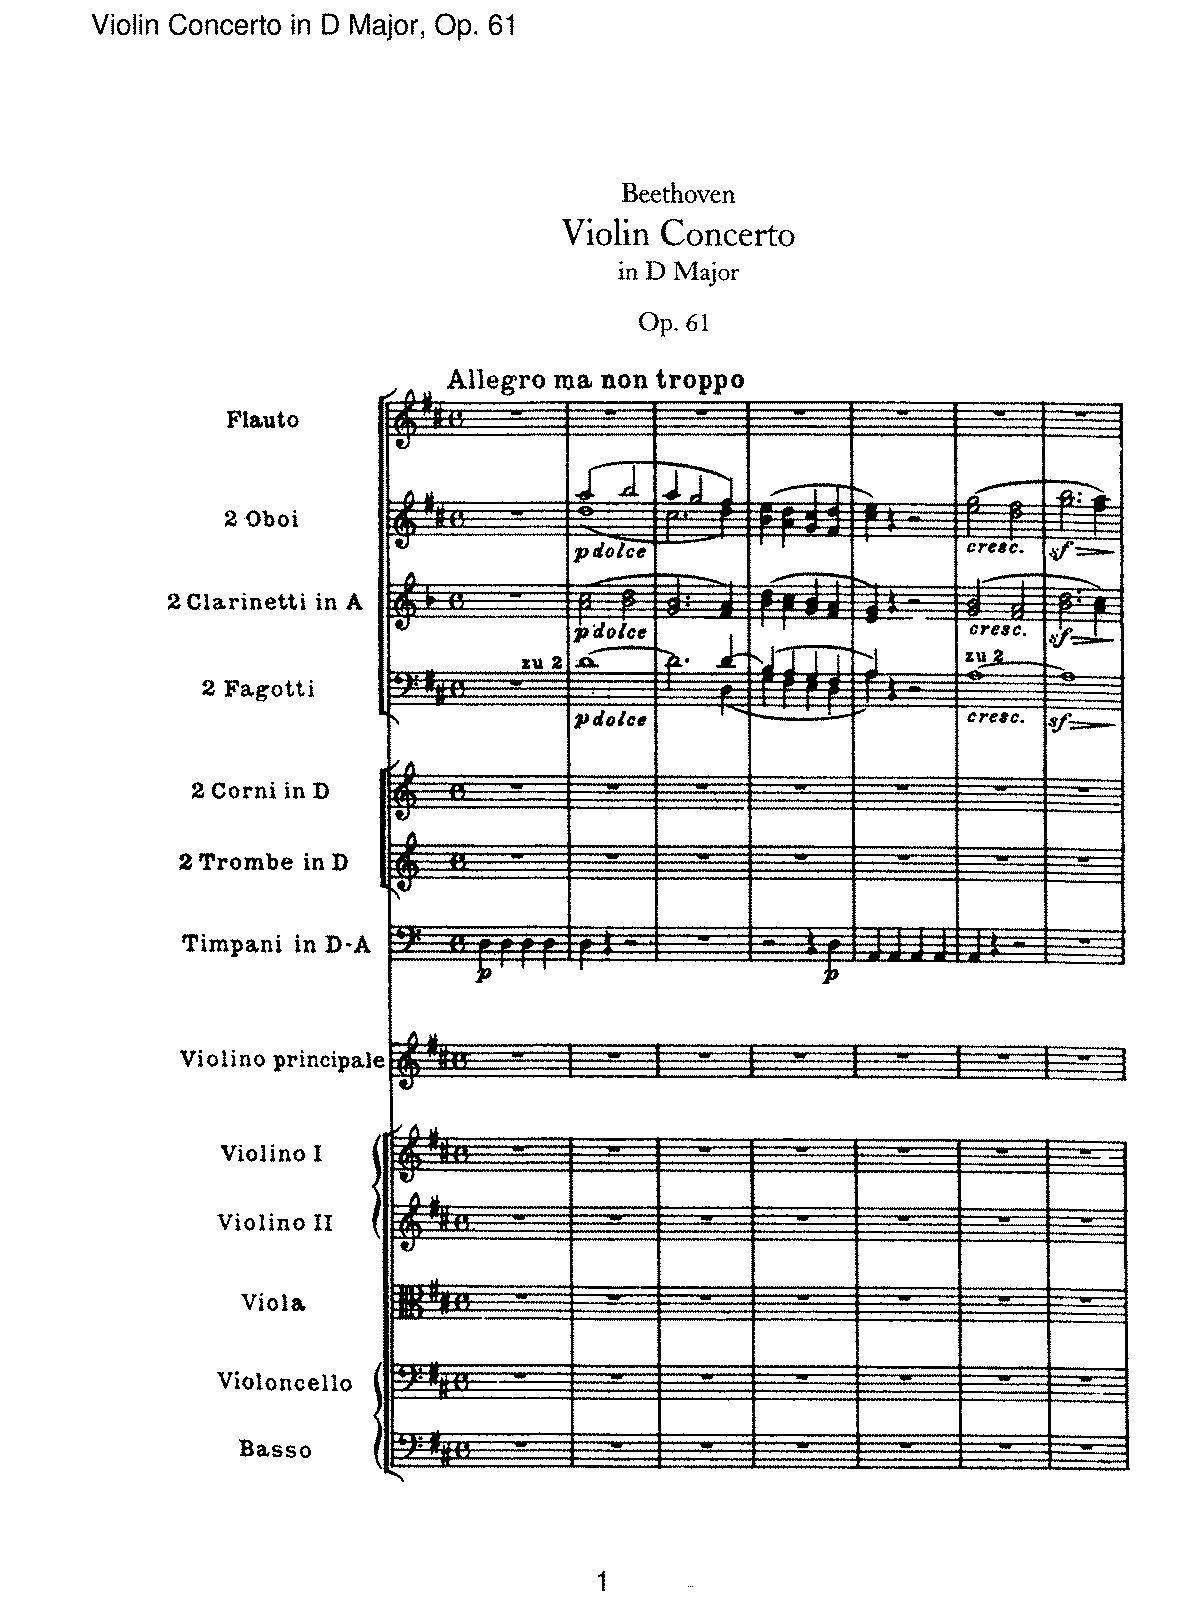 beethoven violin concerto in d major analysis